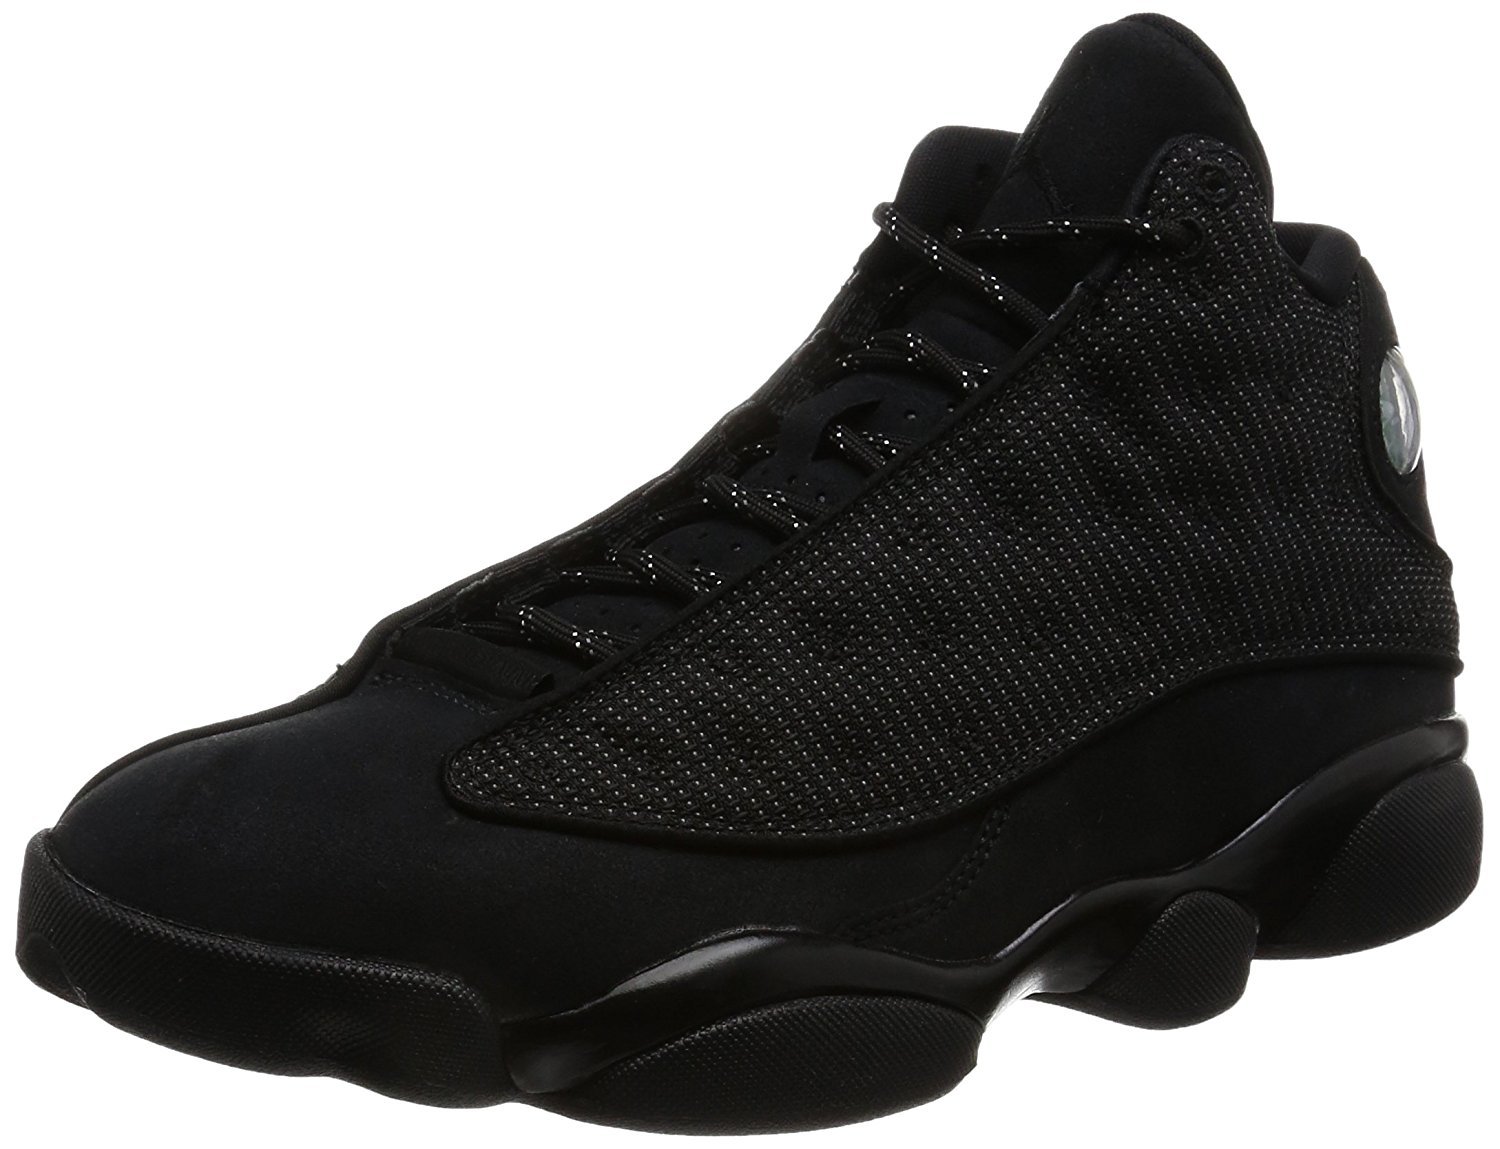 3bba4787d73fb1 Get Quotations · Jordan Men Air Jordan 13 Retro (black   black-anthracite)  Size 11.0 US